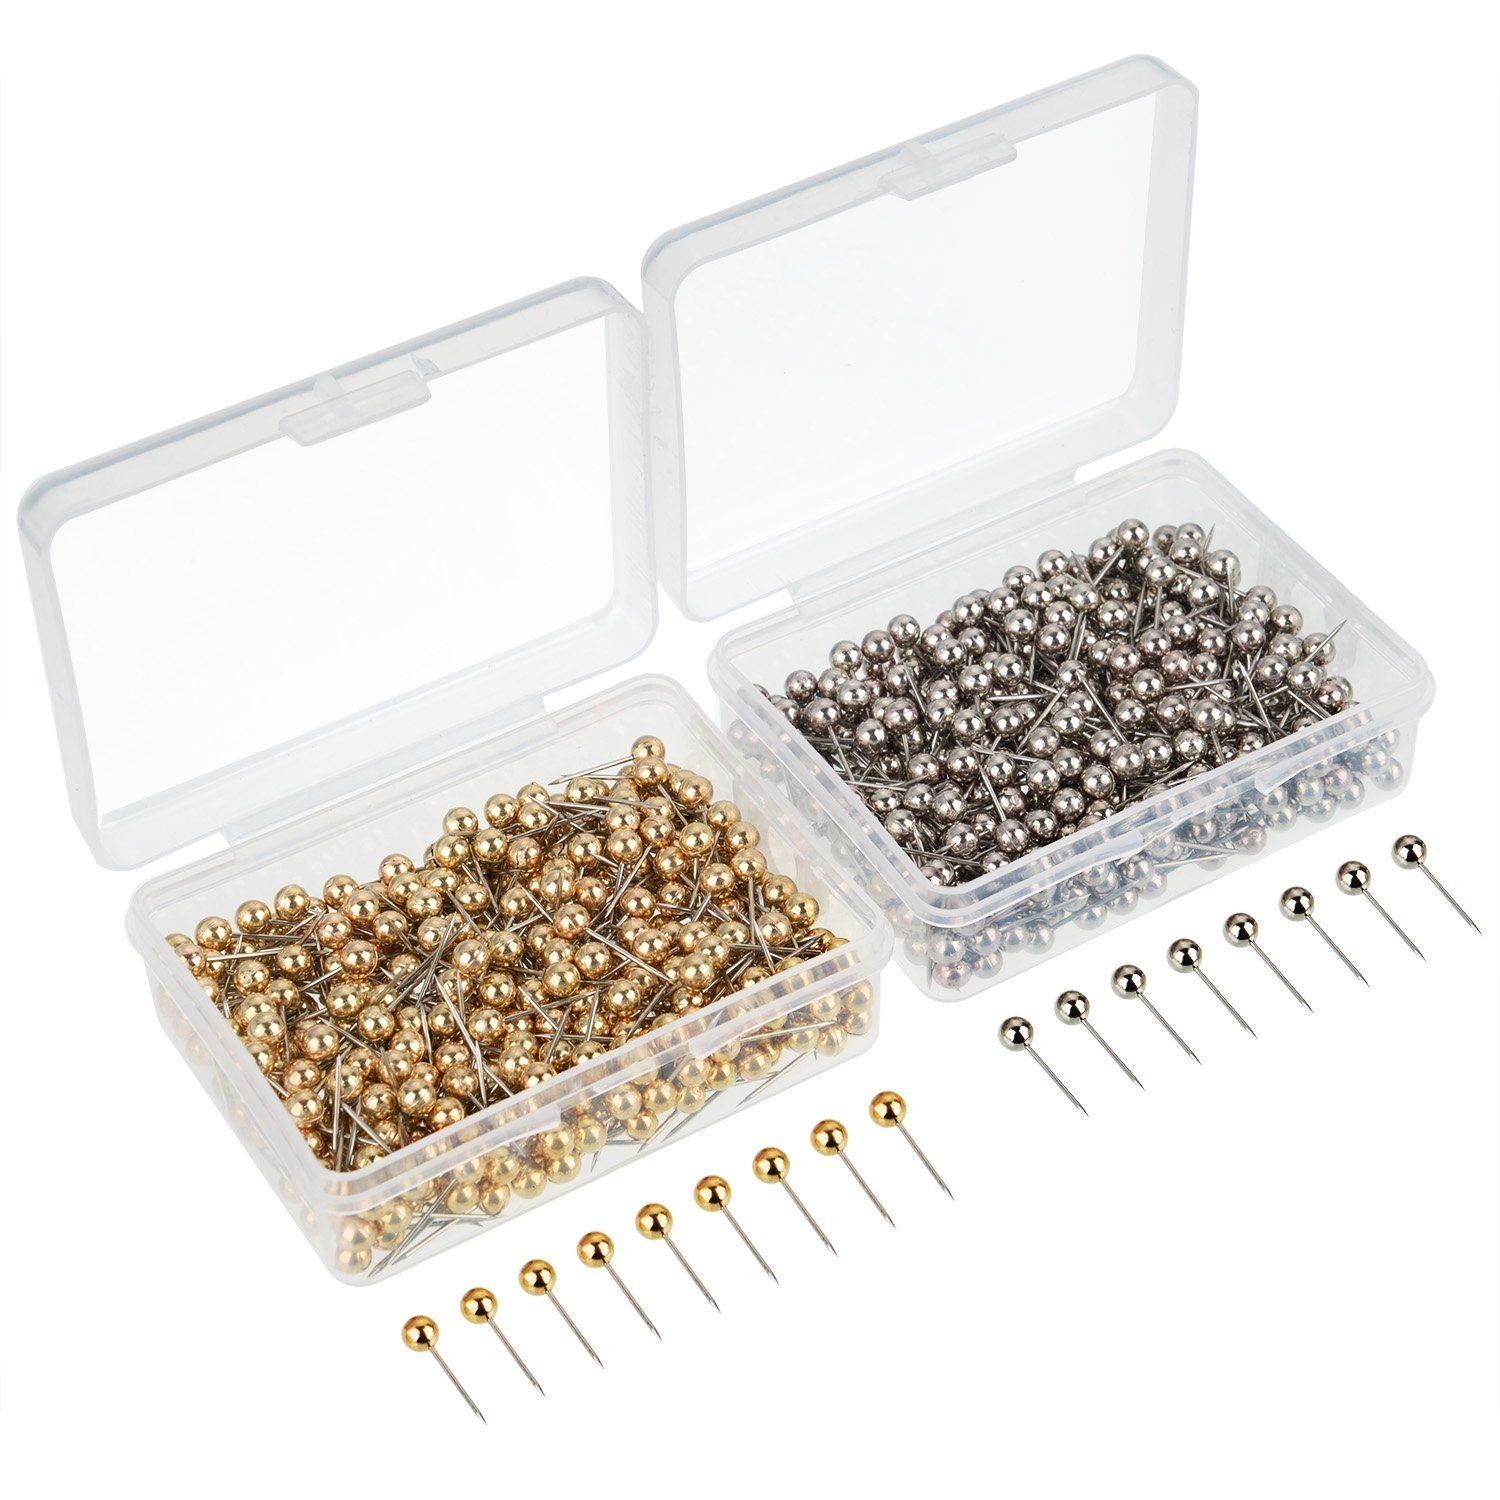 TOOGOO 800 Pieces Map Tacks Push Pins Round Plastic Head with Stainless Steel Point, 0.16 Inch Head, Gold and Silver